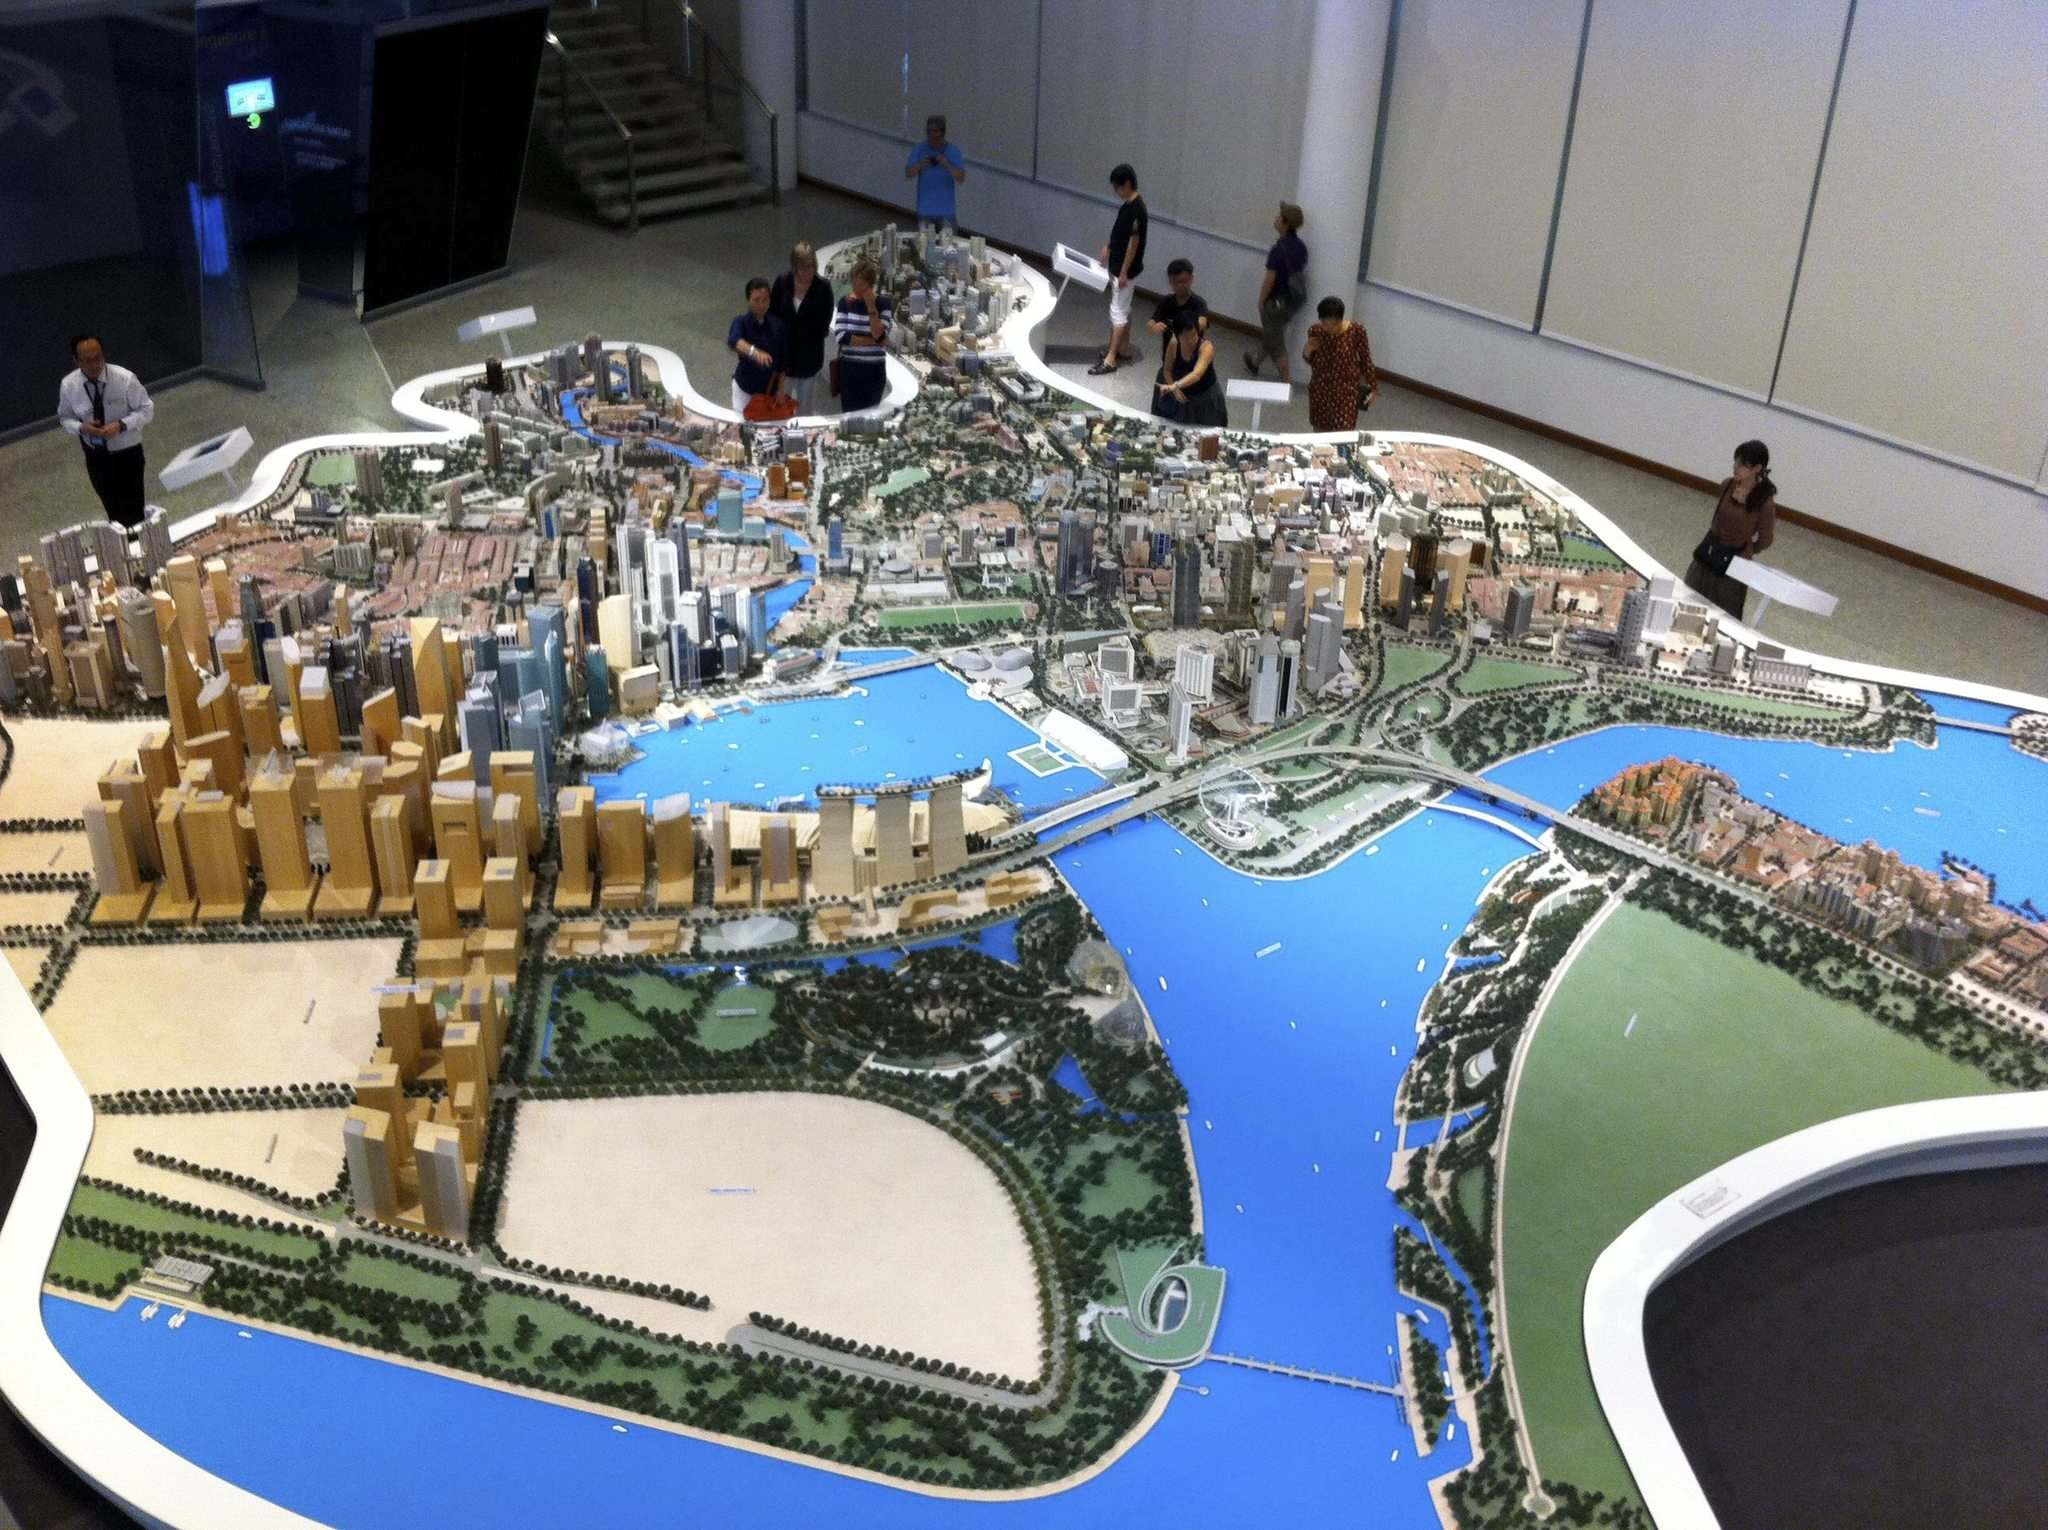 The Singapore gallery offers an immersive experience for visitors to learn about city development. (Gabrielle Donoff)